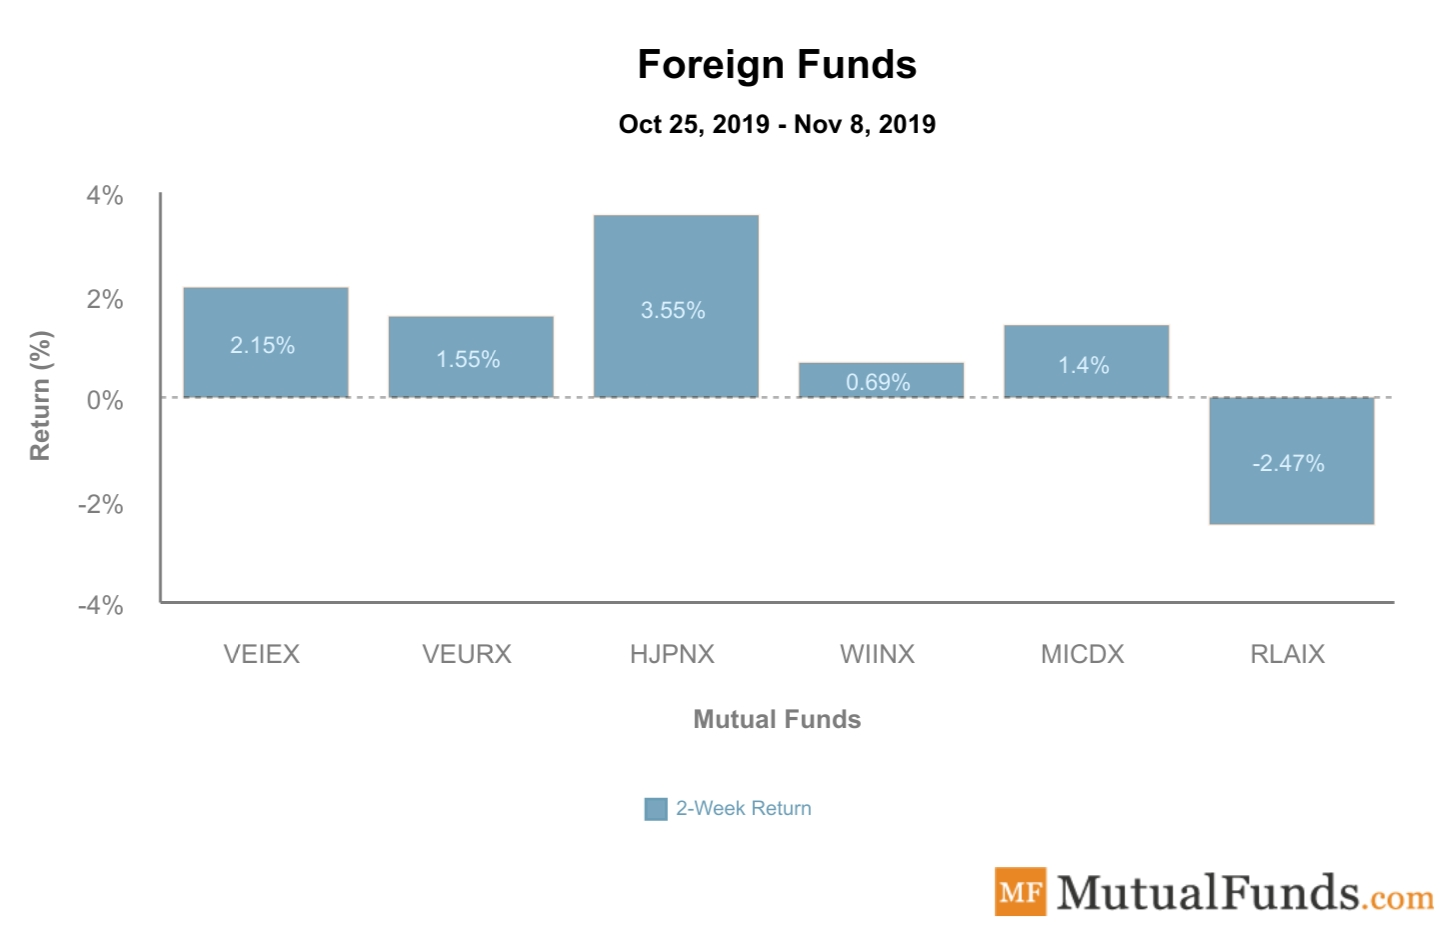 Foreign Funds Performance Nov 2019